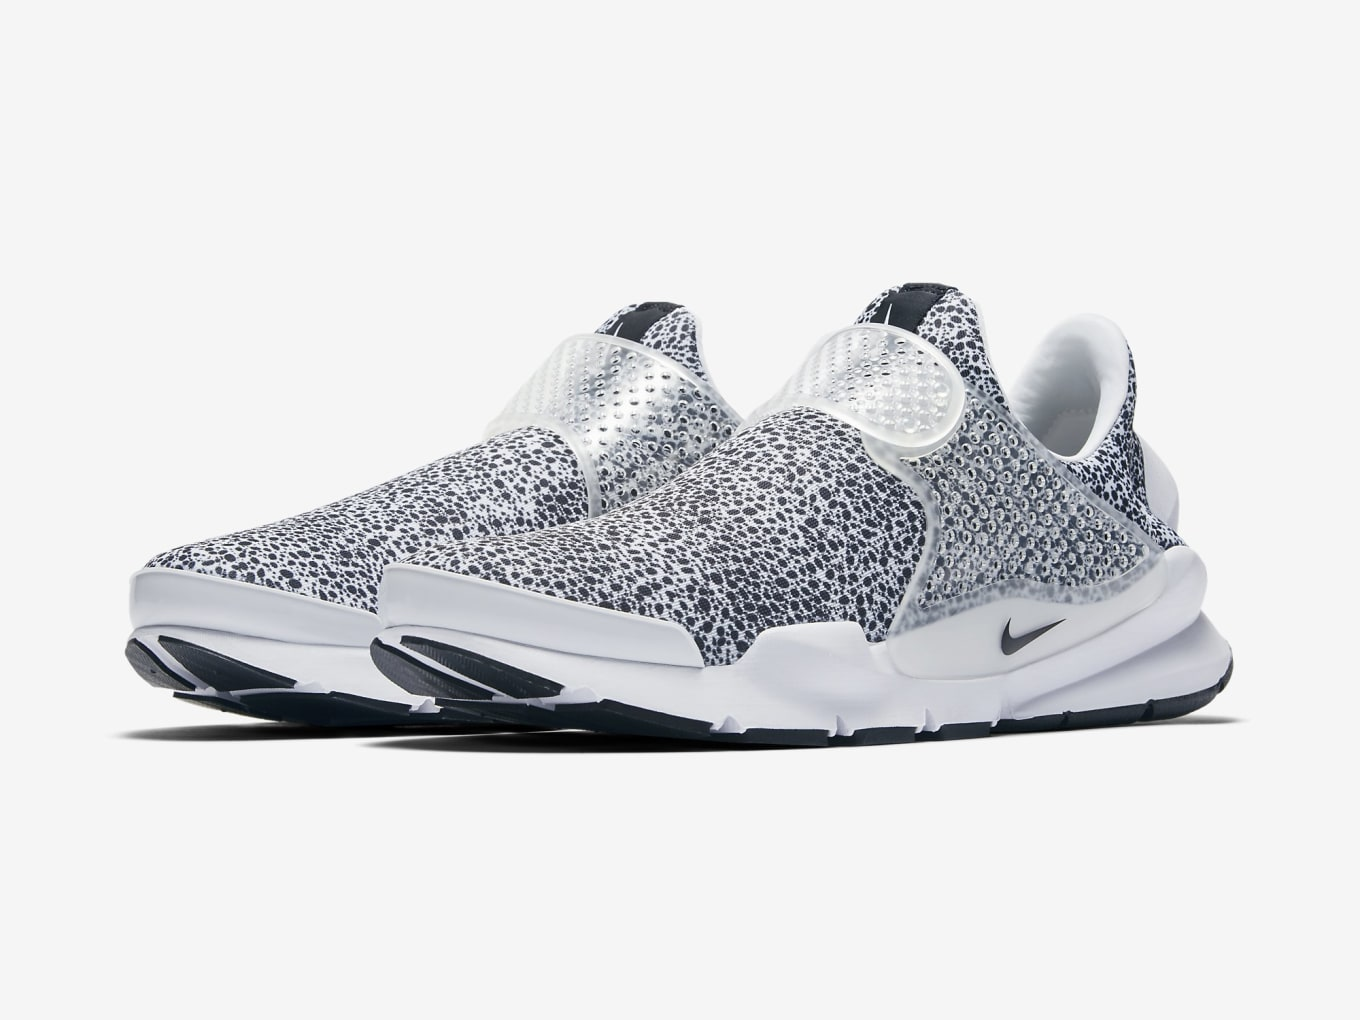 low priced 4b421 3a690 Safari Nike Sock Darts Are Releasing Too